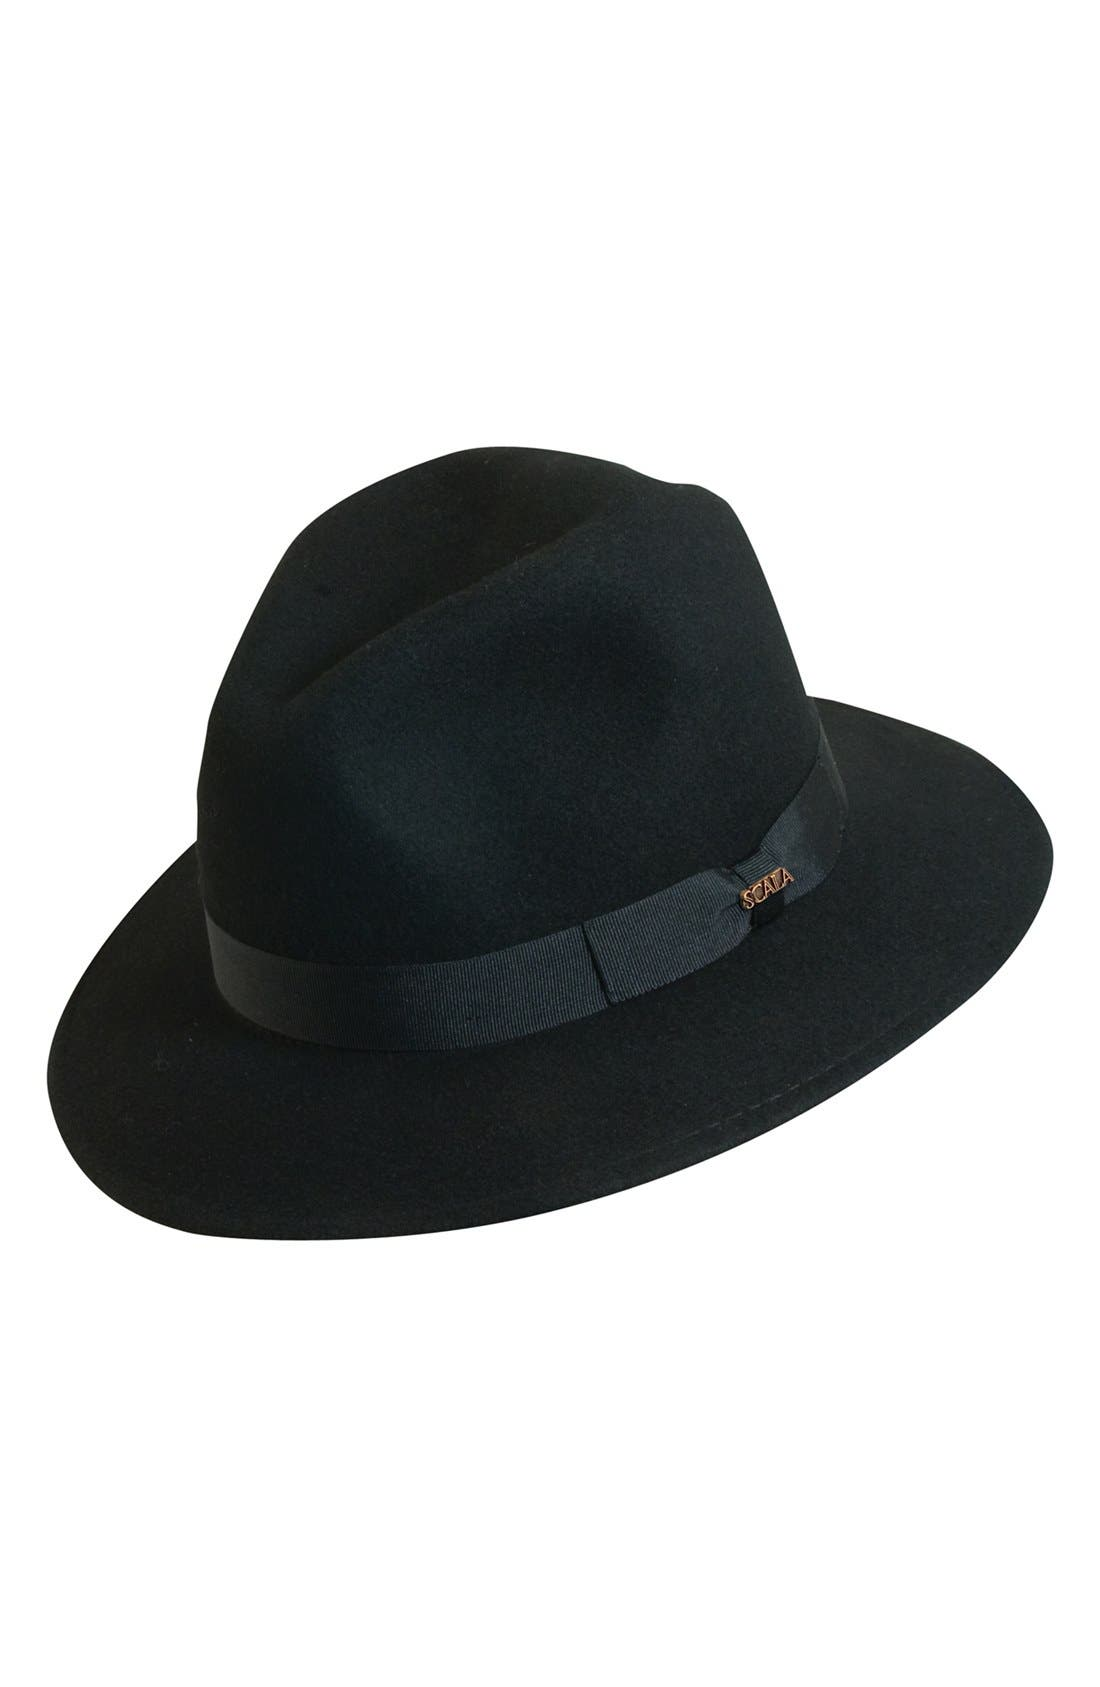 'Classico' Crushable Felt Safari Hat,                         Main,                         color, Black